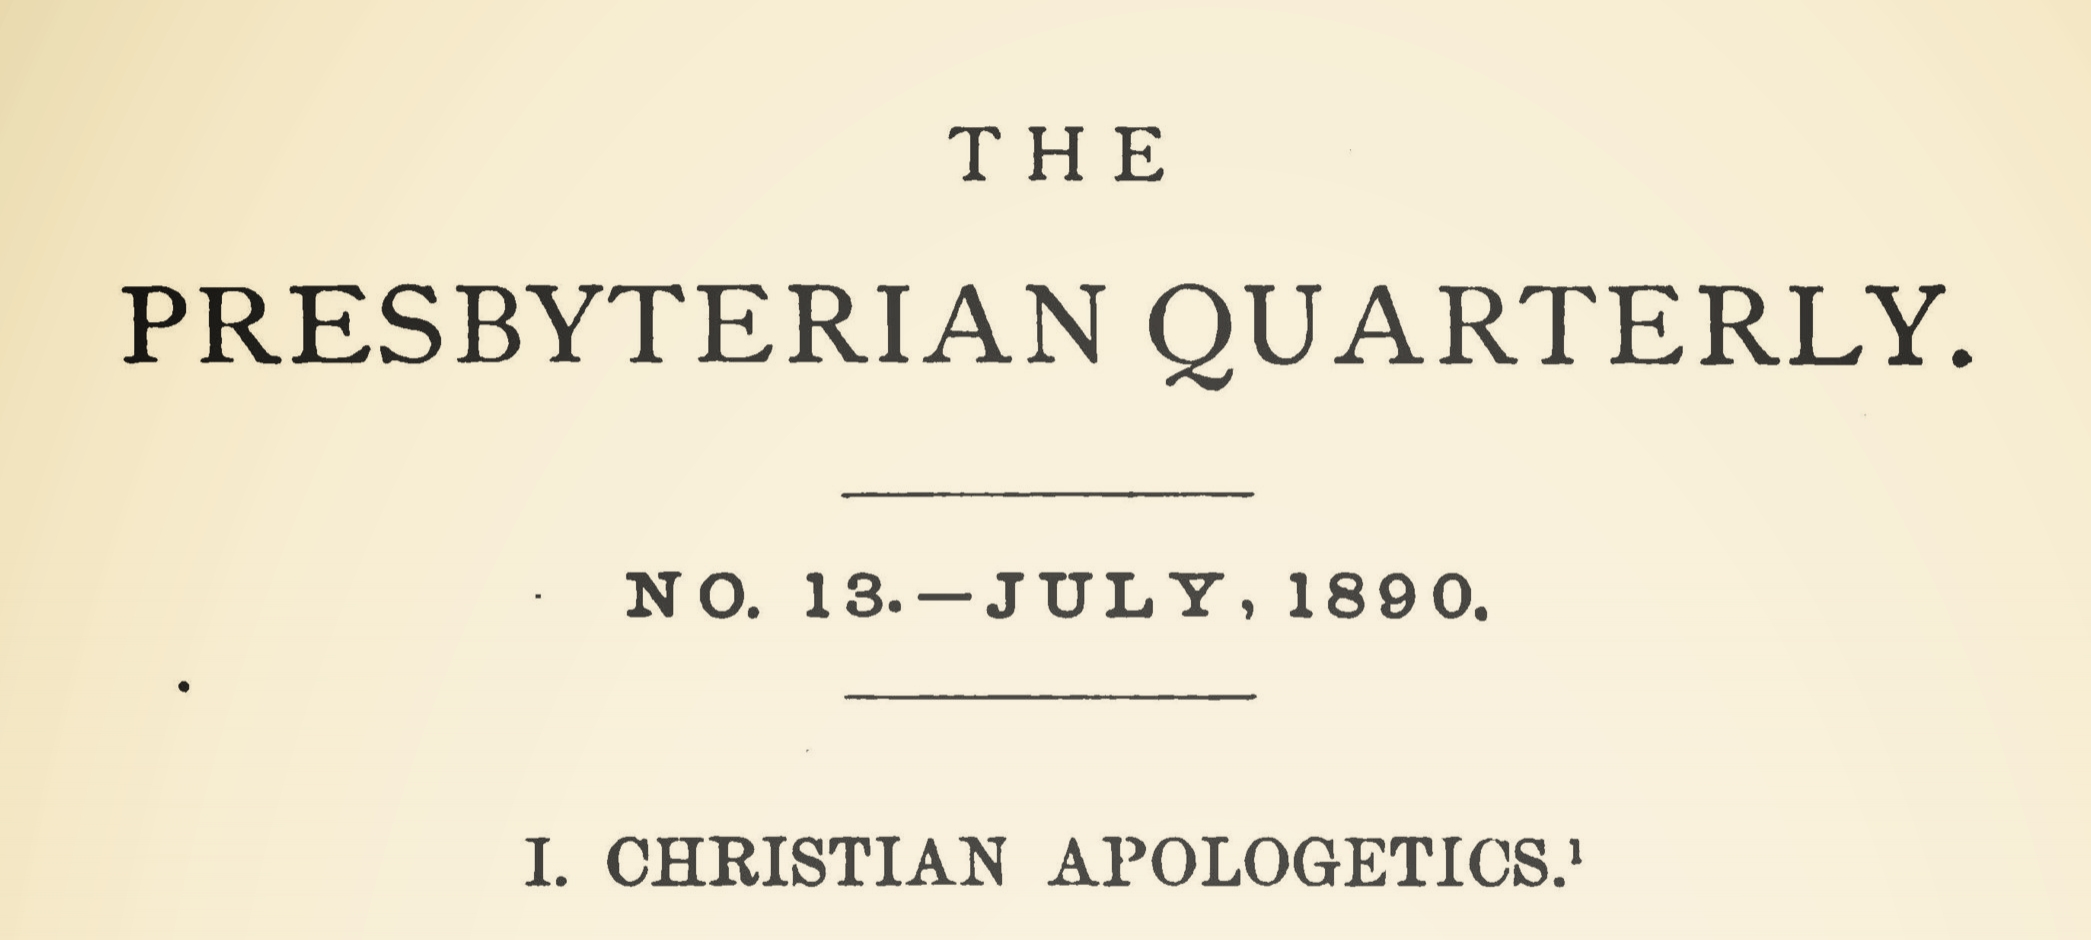 Beattie, Francis Robert, Christian Apologetics Inaugural Address Title Page.jpg